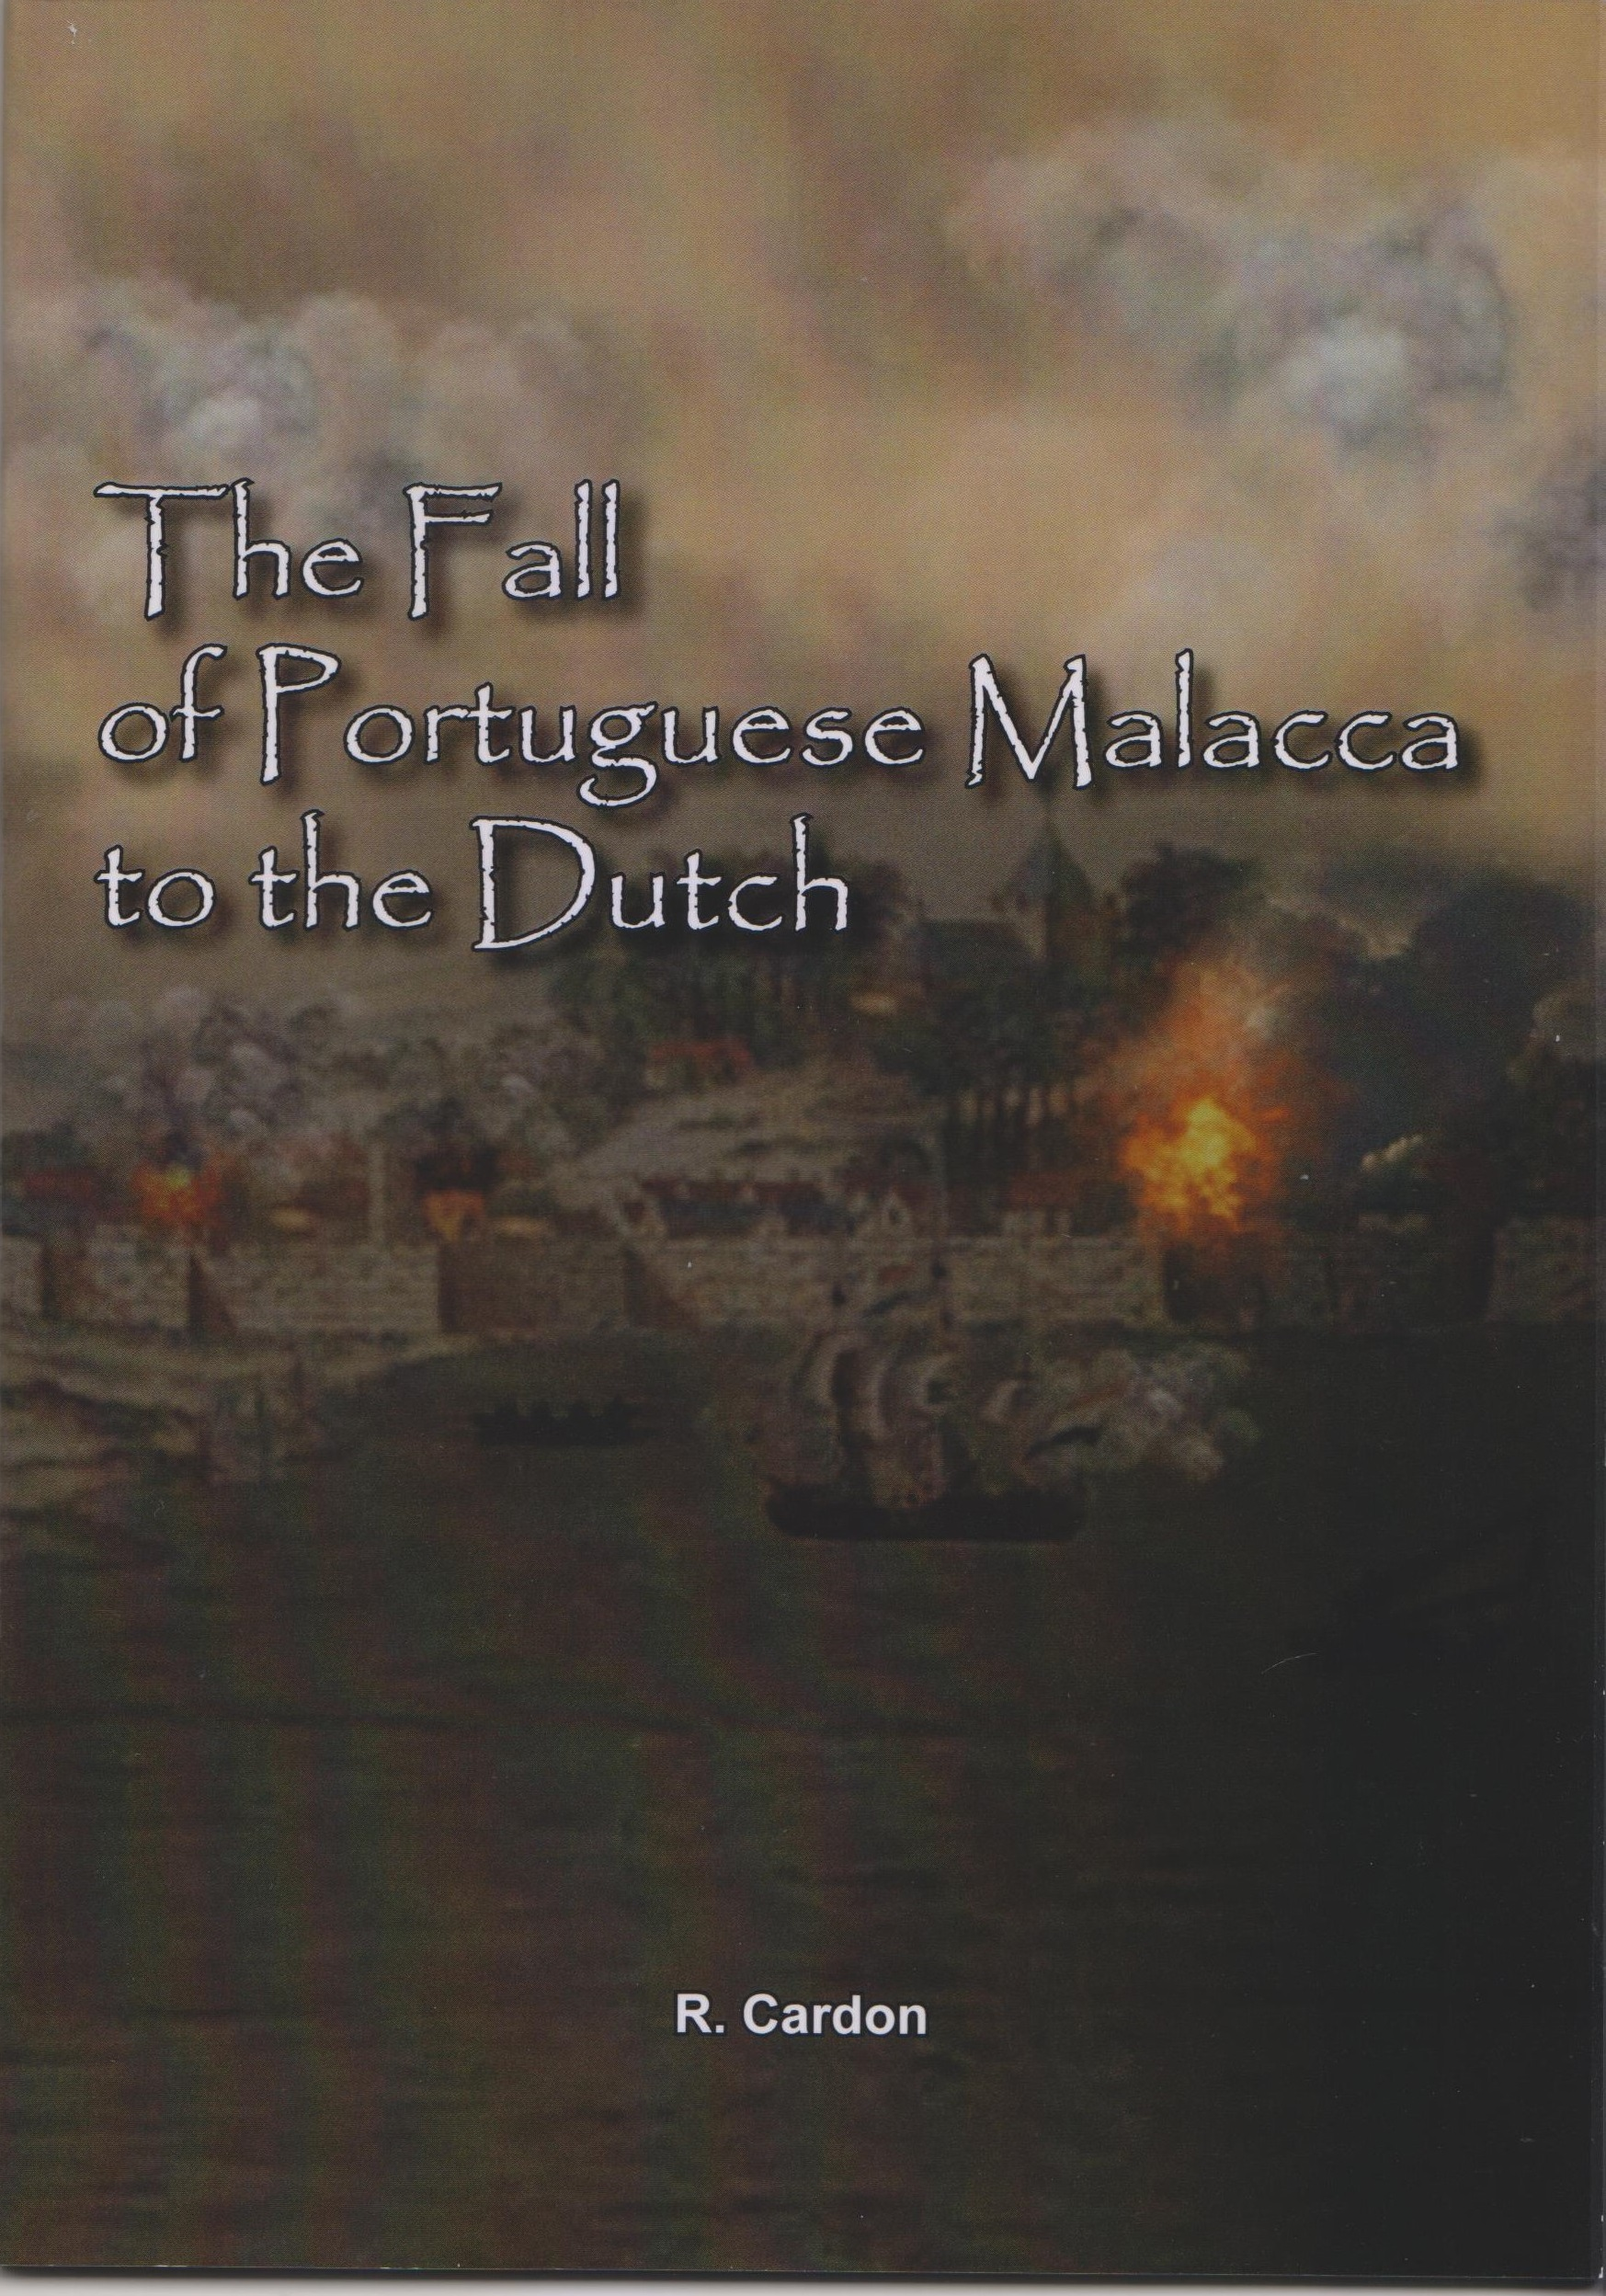 The Fall of Portuguese Malacca to the Dutch